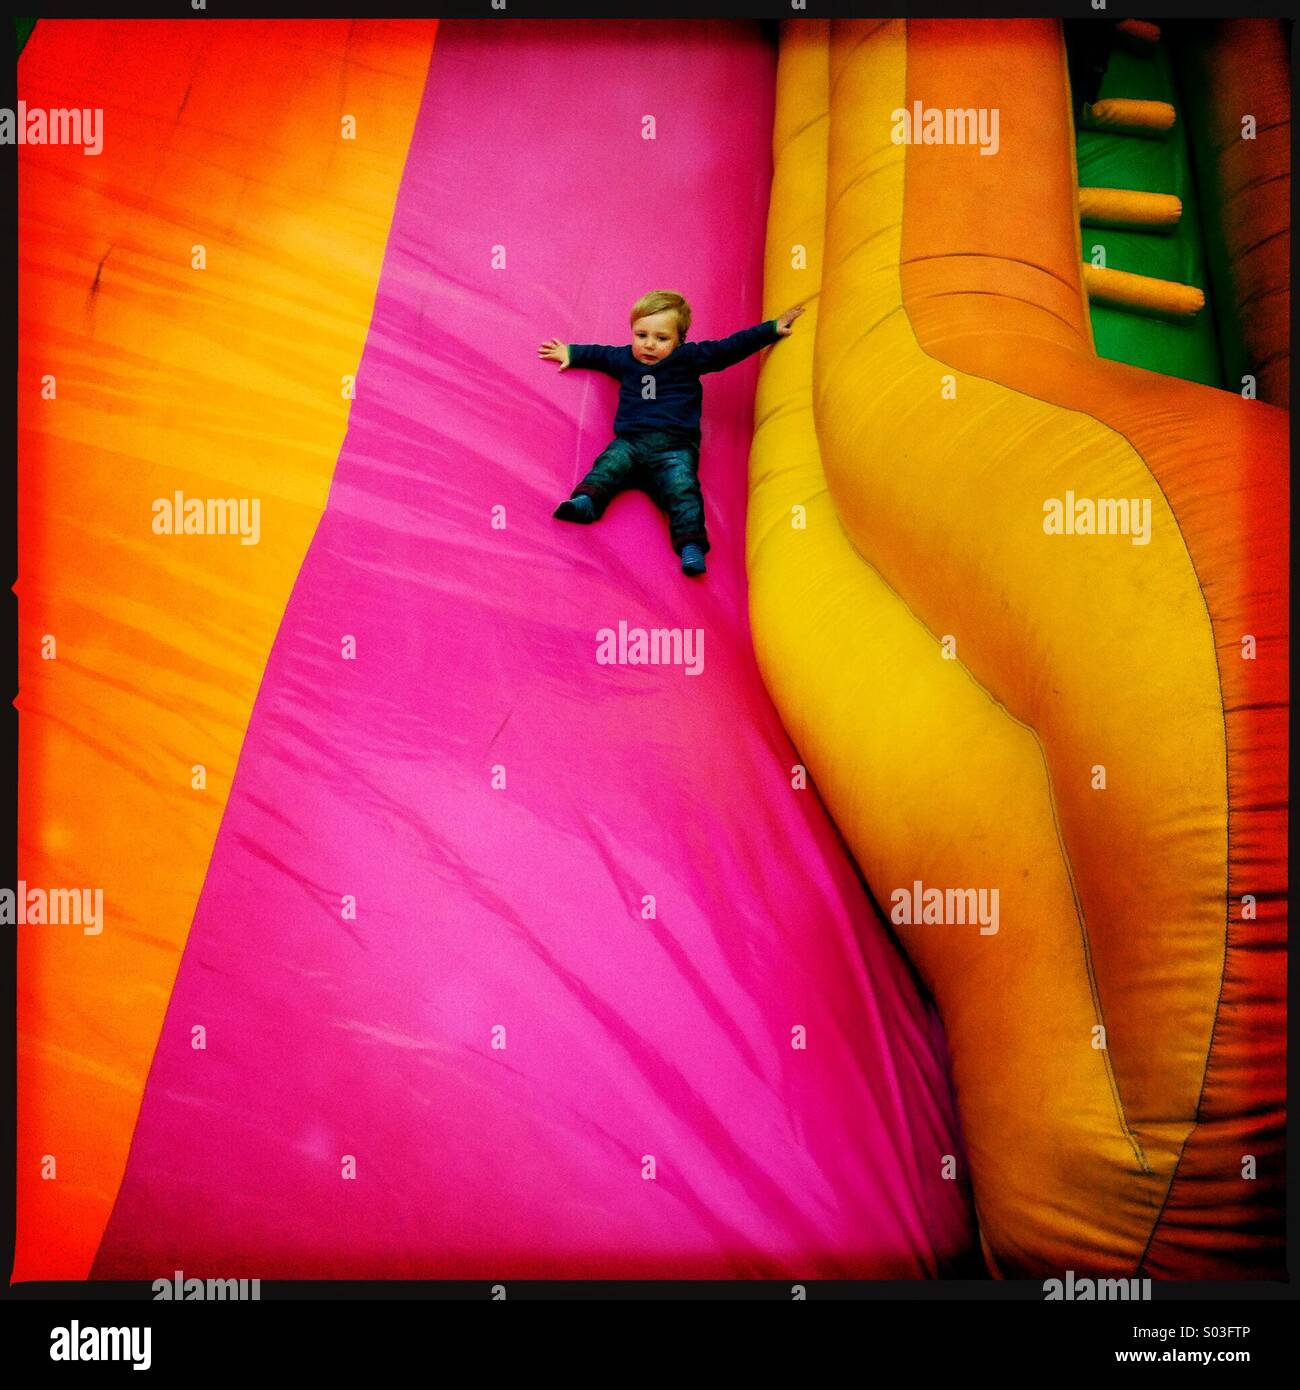 A young two year old boy sliding down aim inflatable slide at a fun fair. The child is showing some degree of fear. - Stock Image